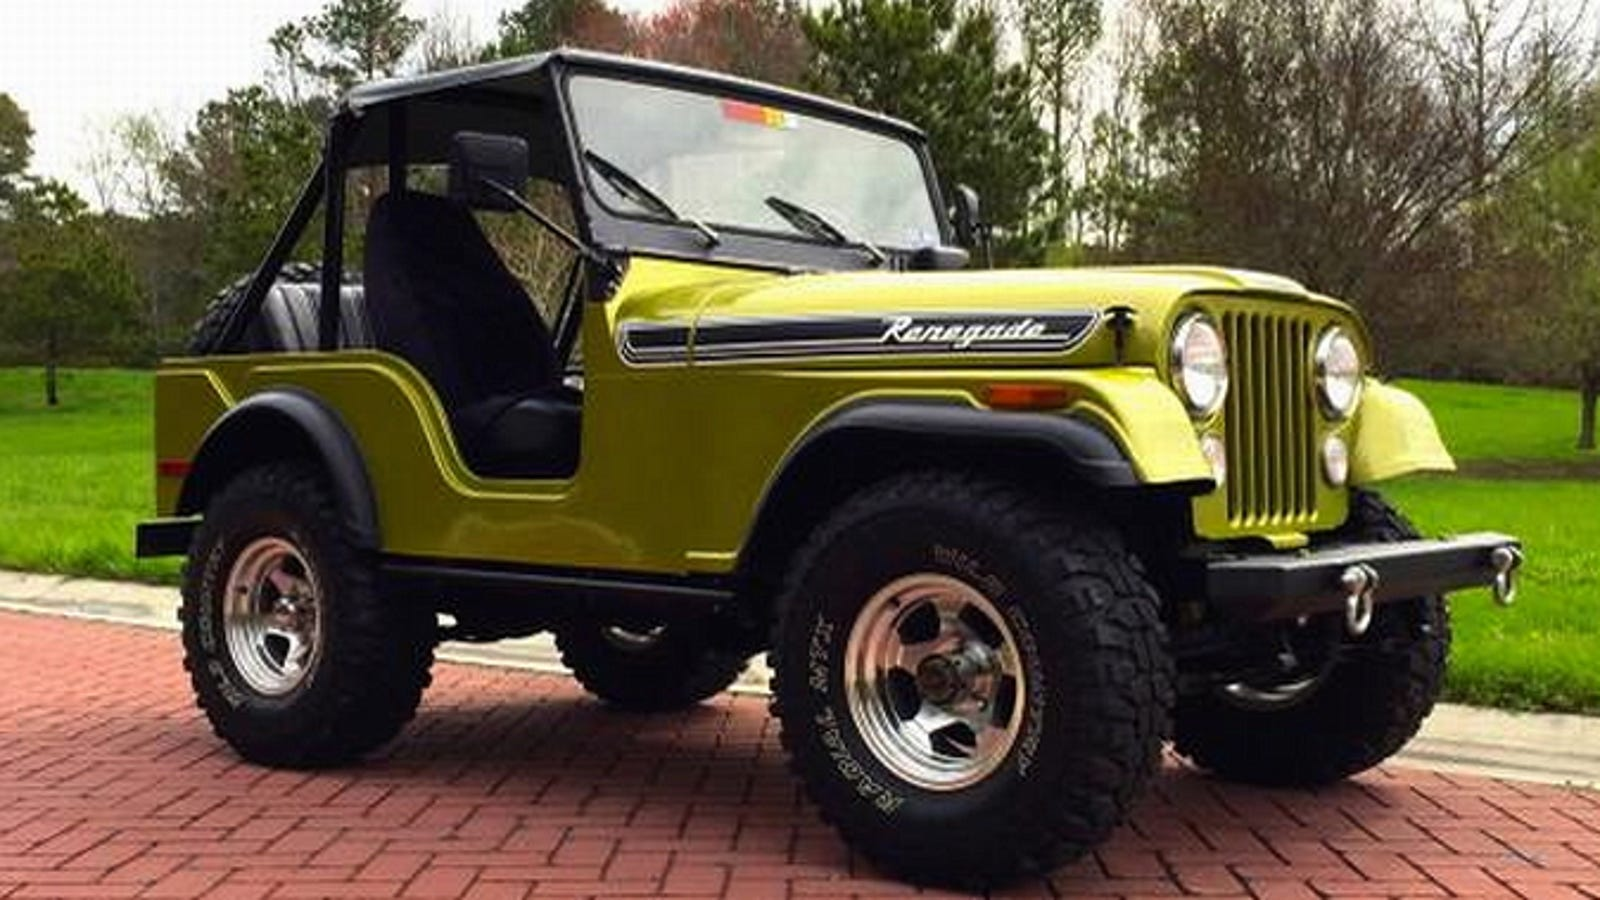 Stupendous For 11 500 This 1972 Jeep Cj5 Laughs At Rust Wiring Cloud Peadfoxcilixyz